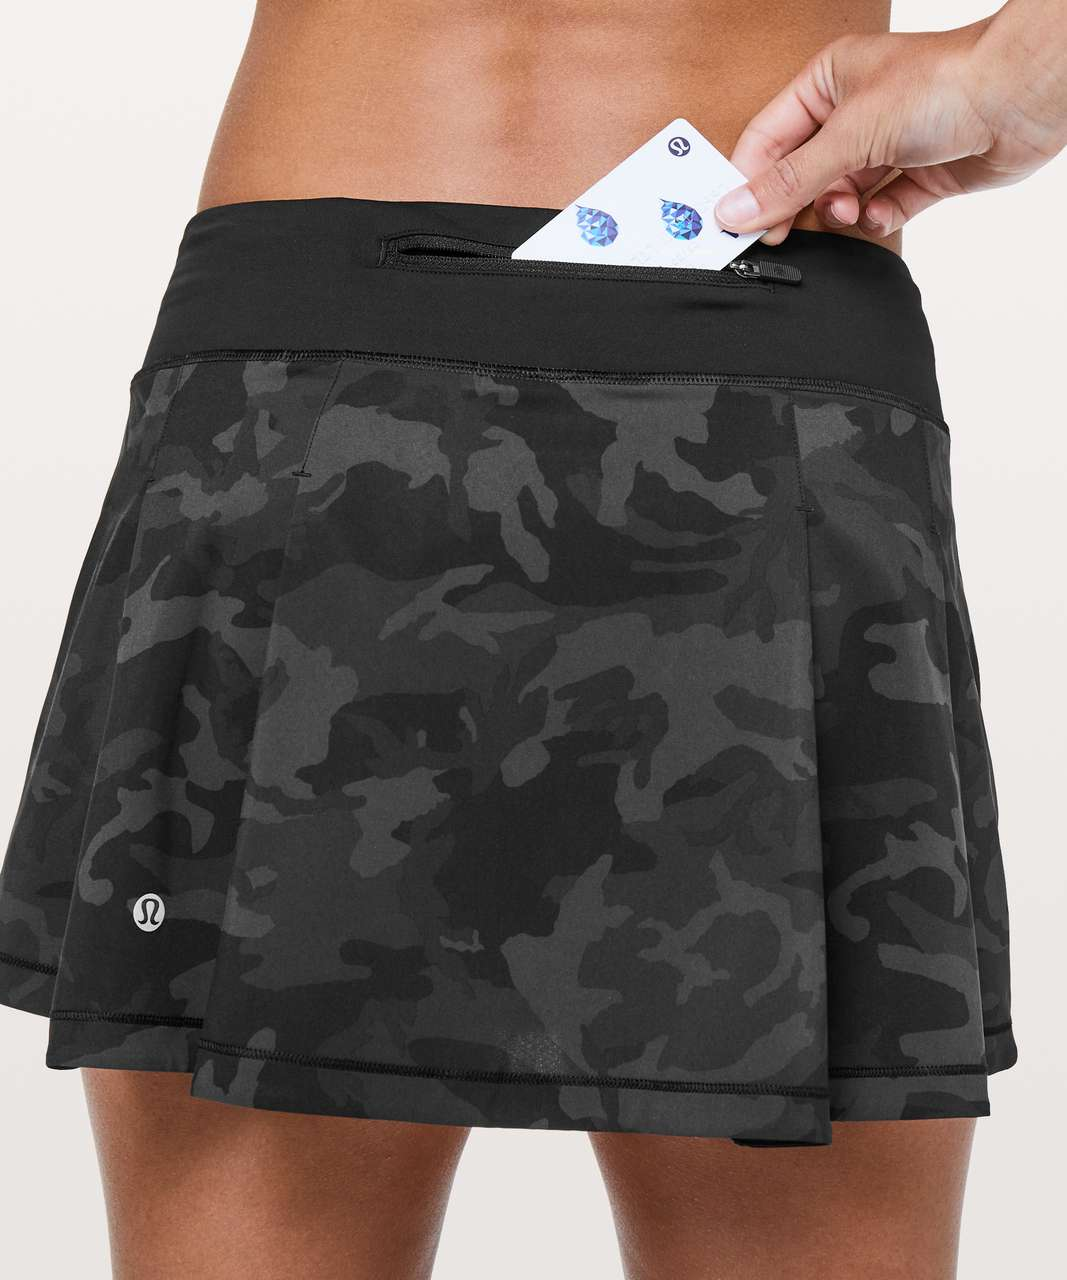 Lululemon Pace Rival Skirt (Regular) *No Panels - Incognito Camo Multi Grey / Black